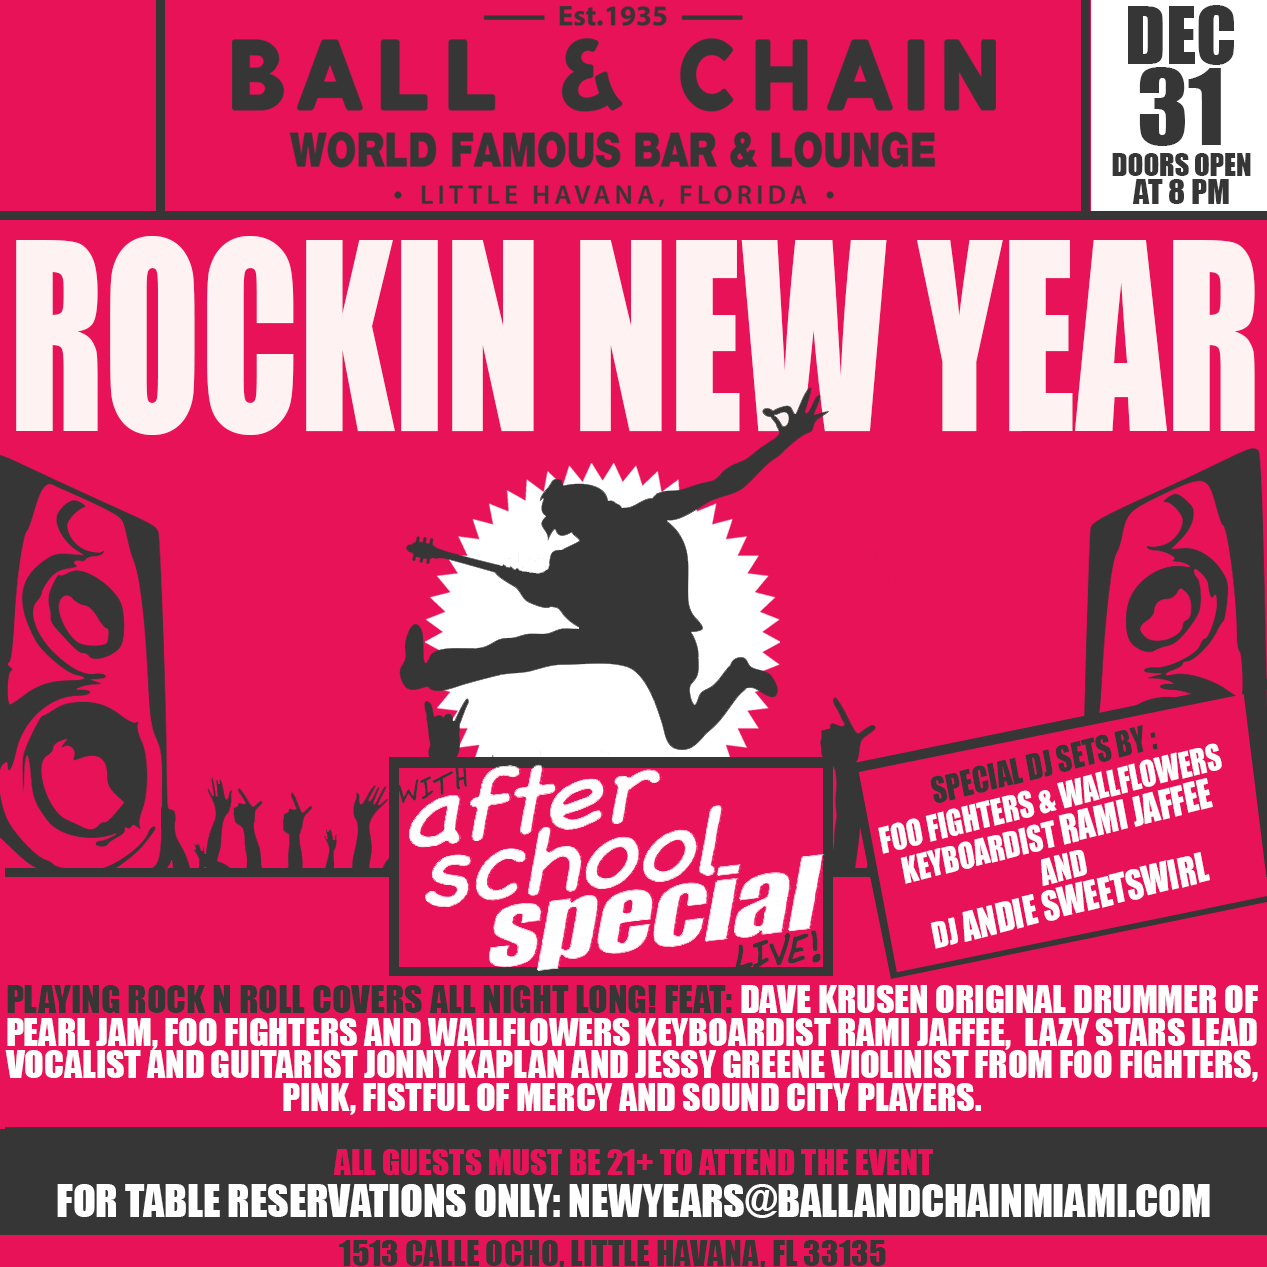 Pay For Rock After School: Ball & Chain Presents Rock Legends Tribute Show, After